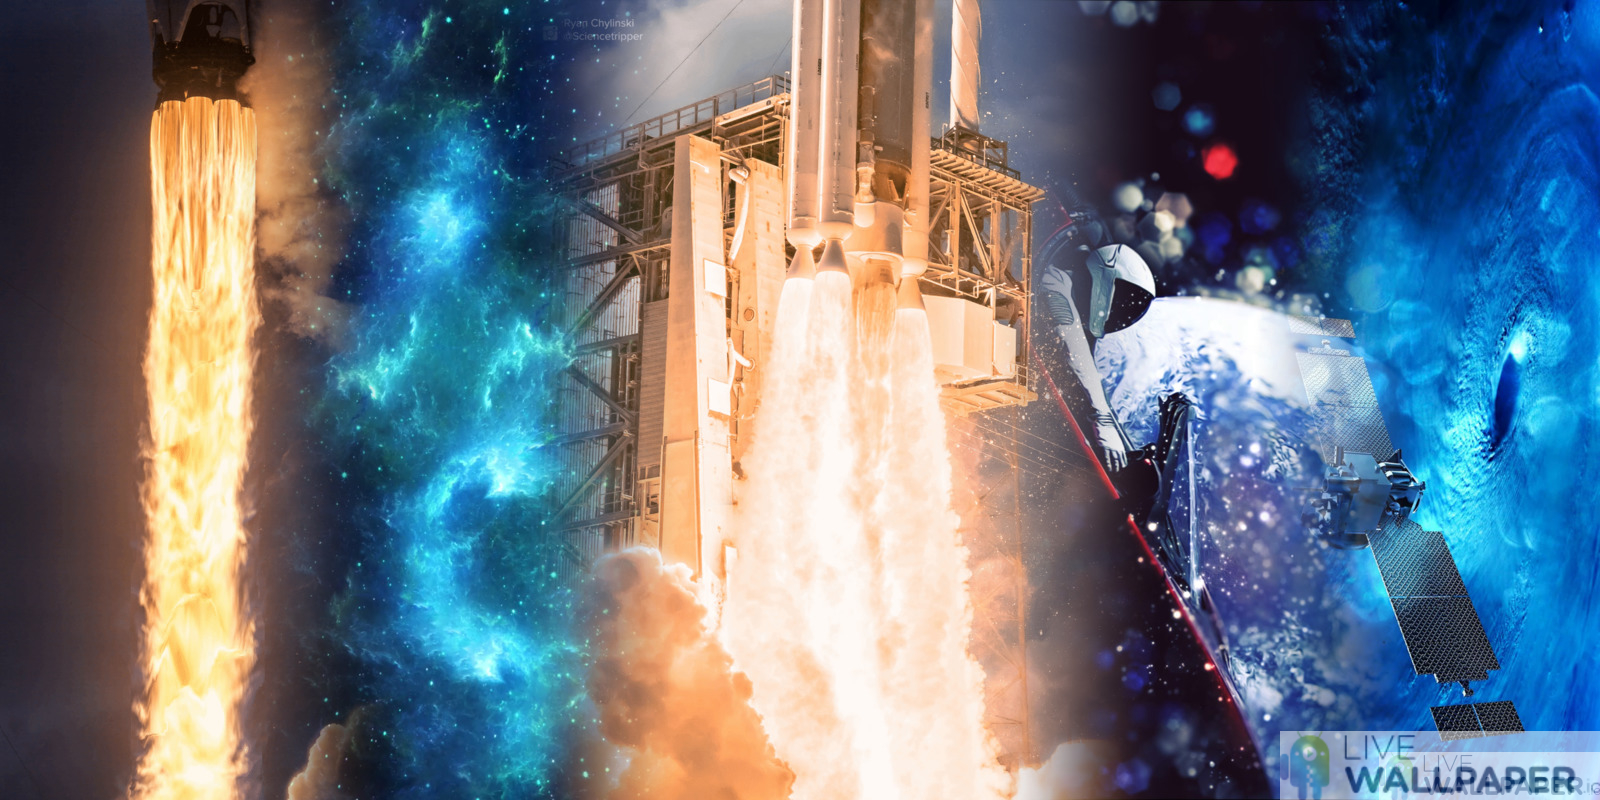 5 cool live wallpapers tagged with SpaceX, sorted by date ...